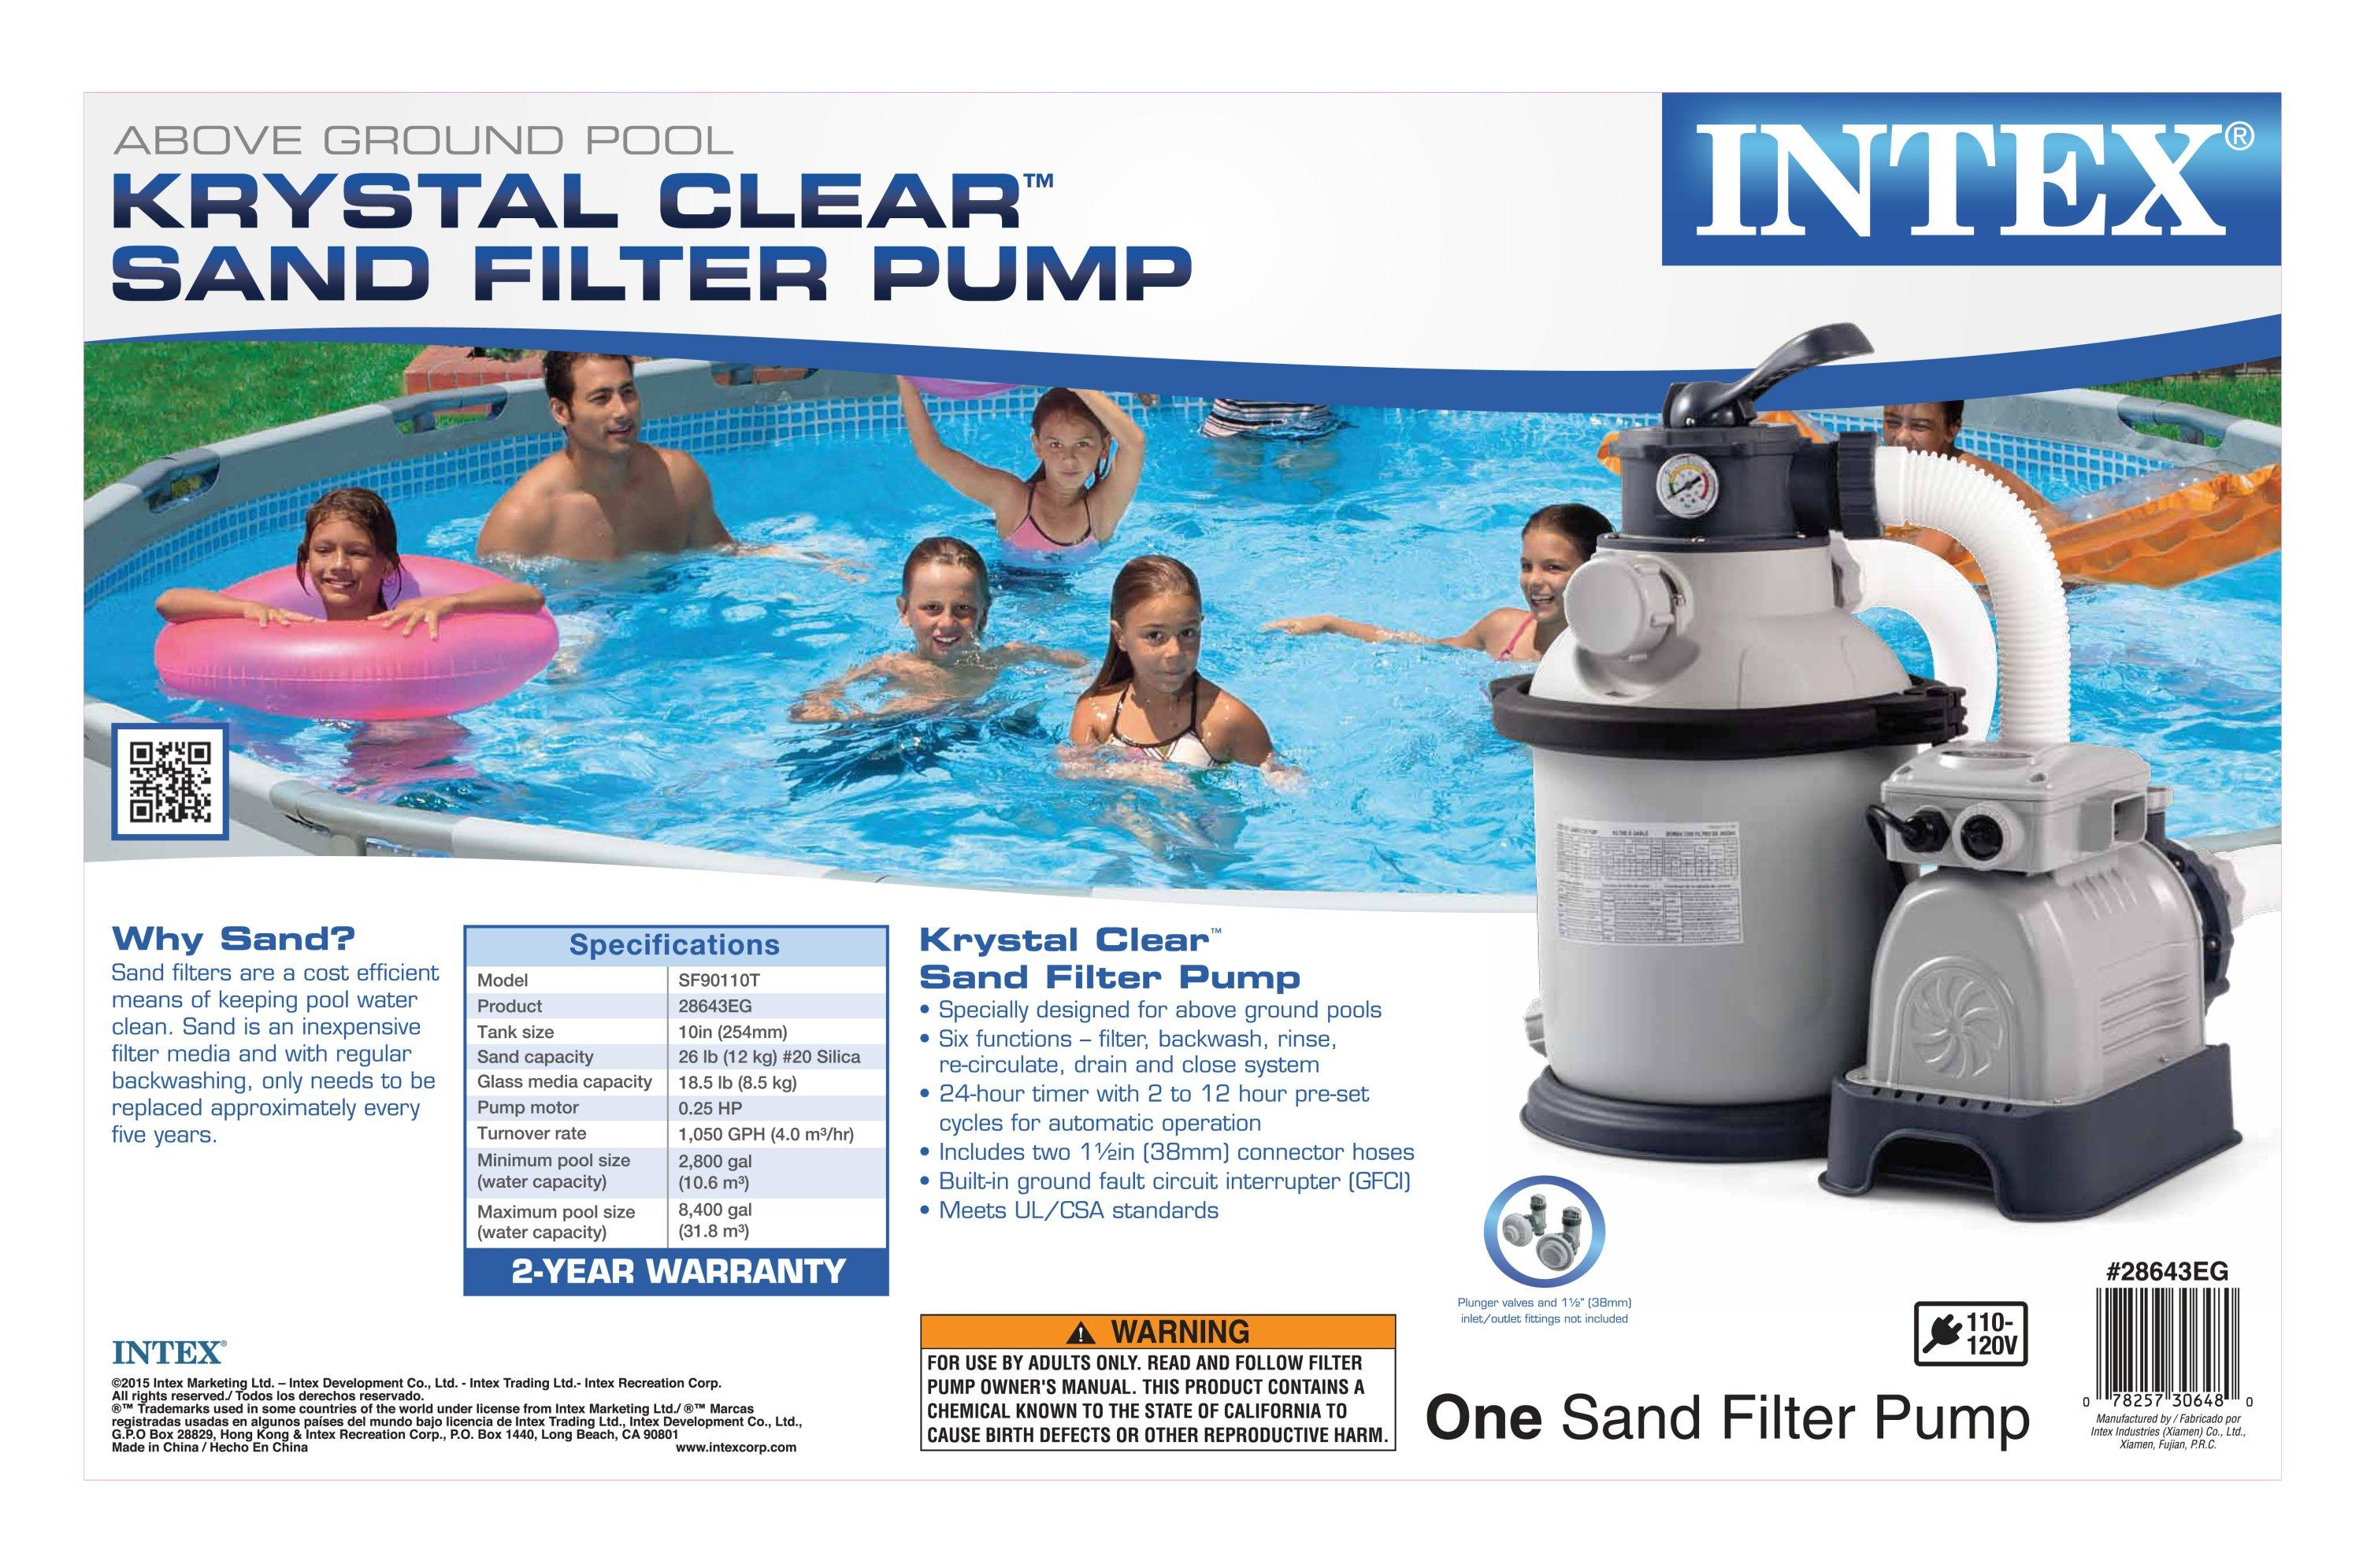 Intex krystal clear sand filter pump for above ground pools 1200 gph pump ebay - Pool filter sand wechseln ...